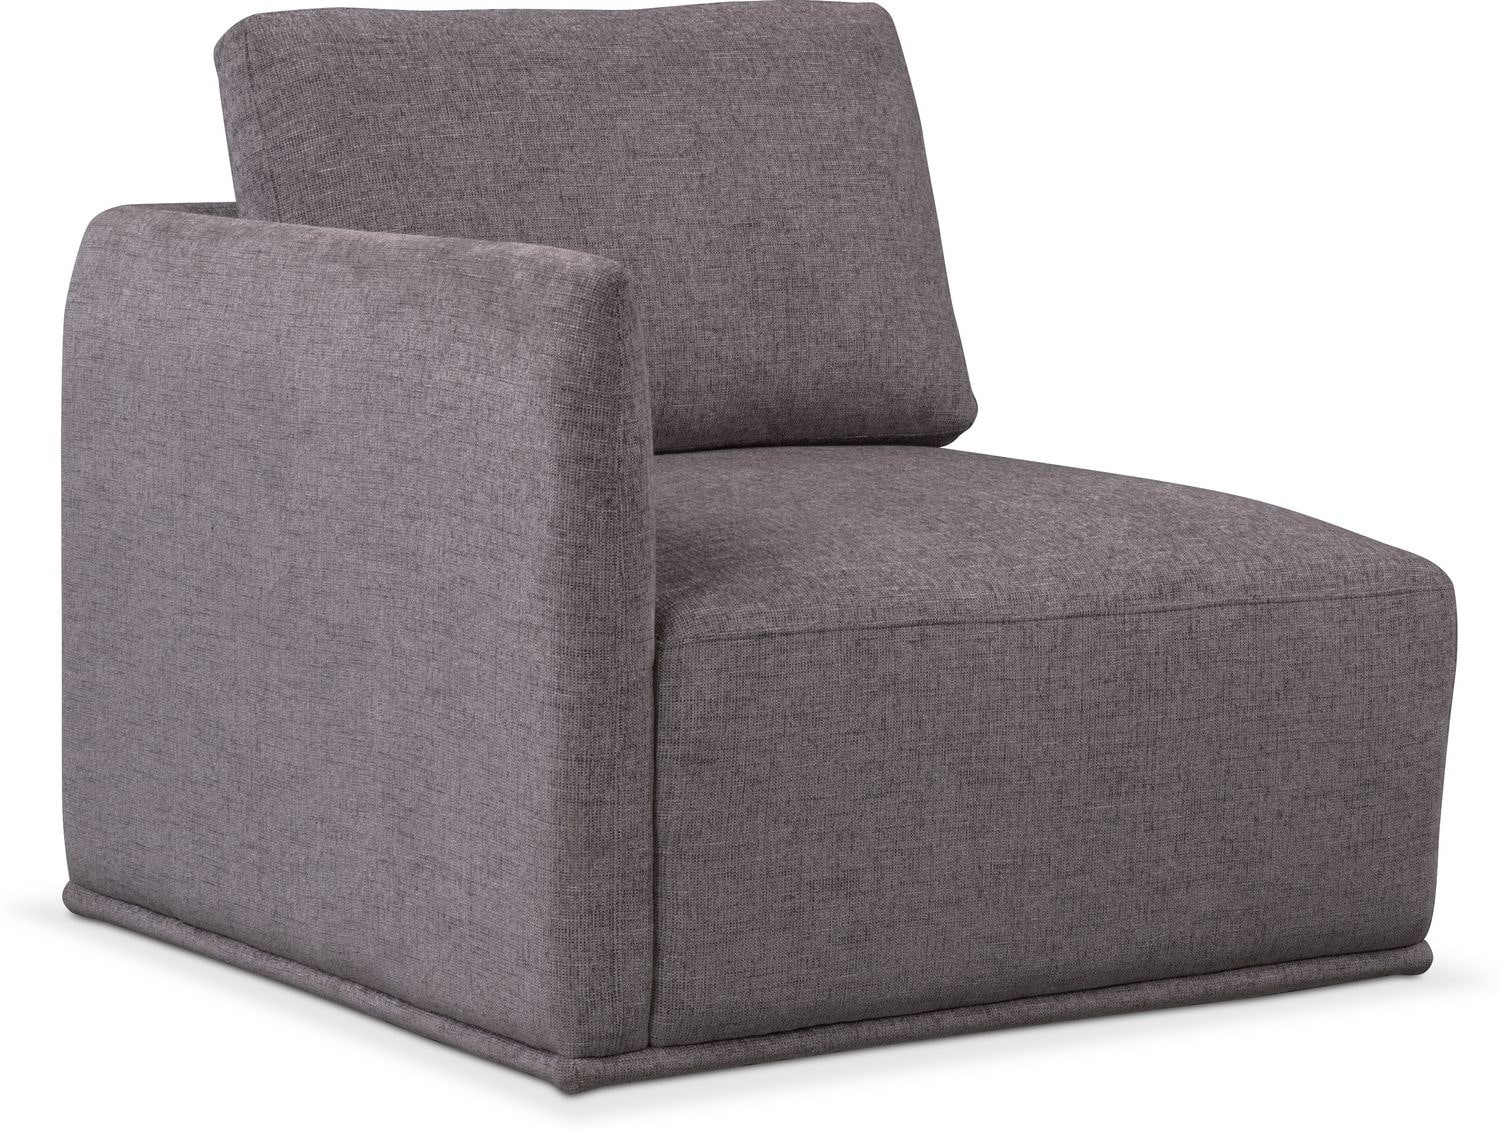 Living Room Furniture - Rio Corner Chair - Gray